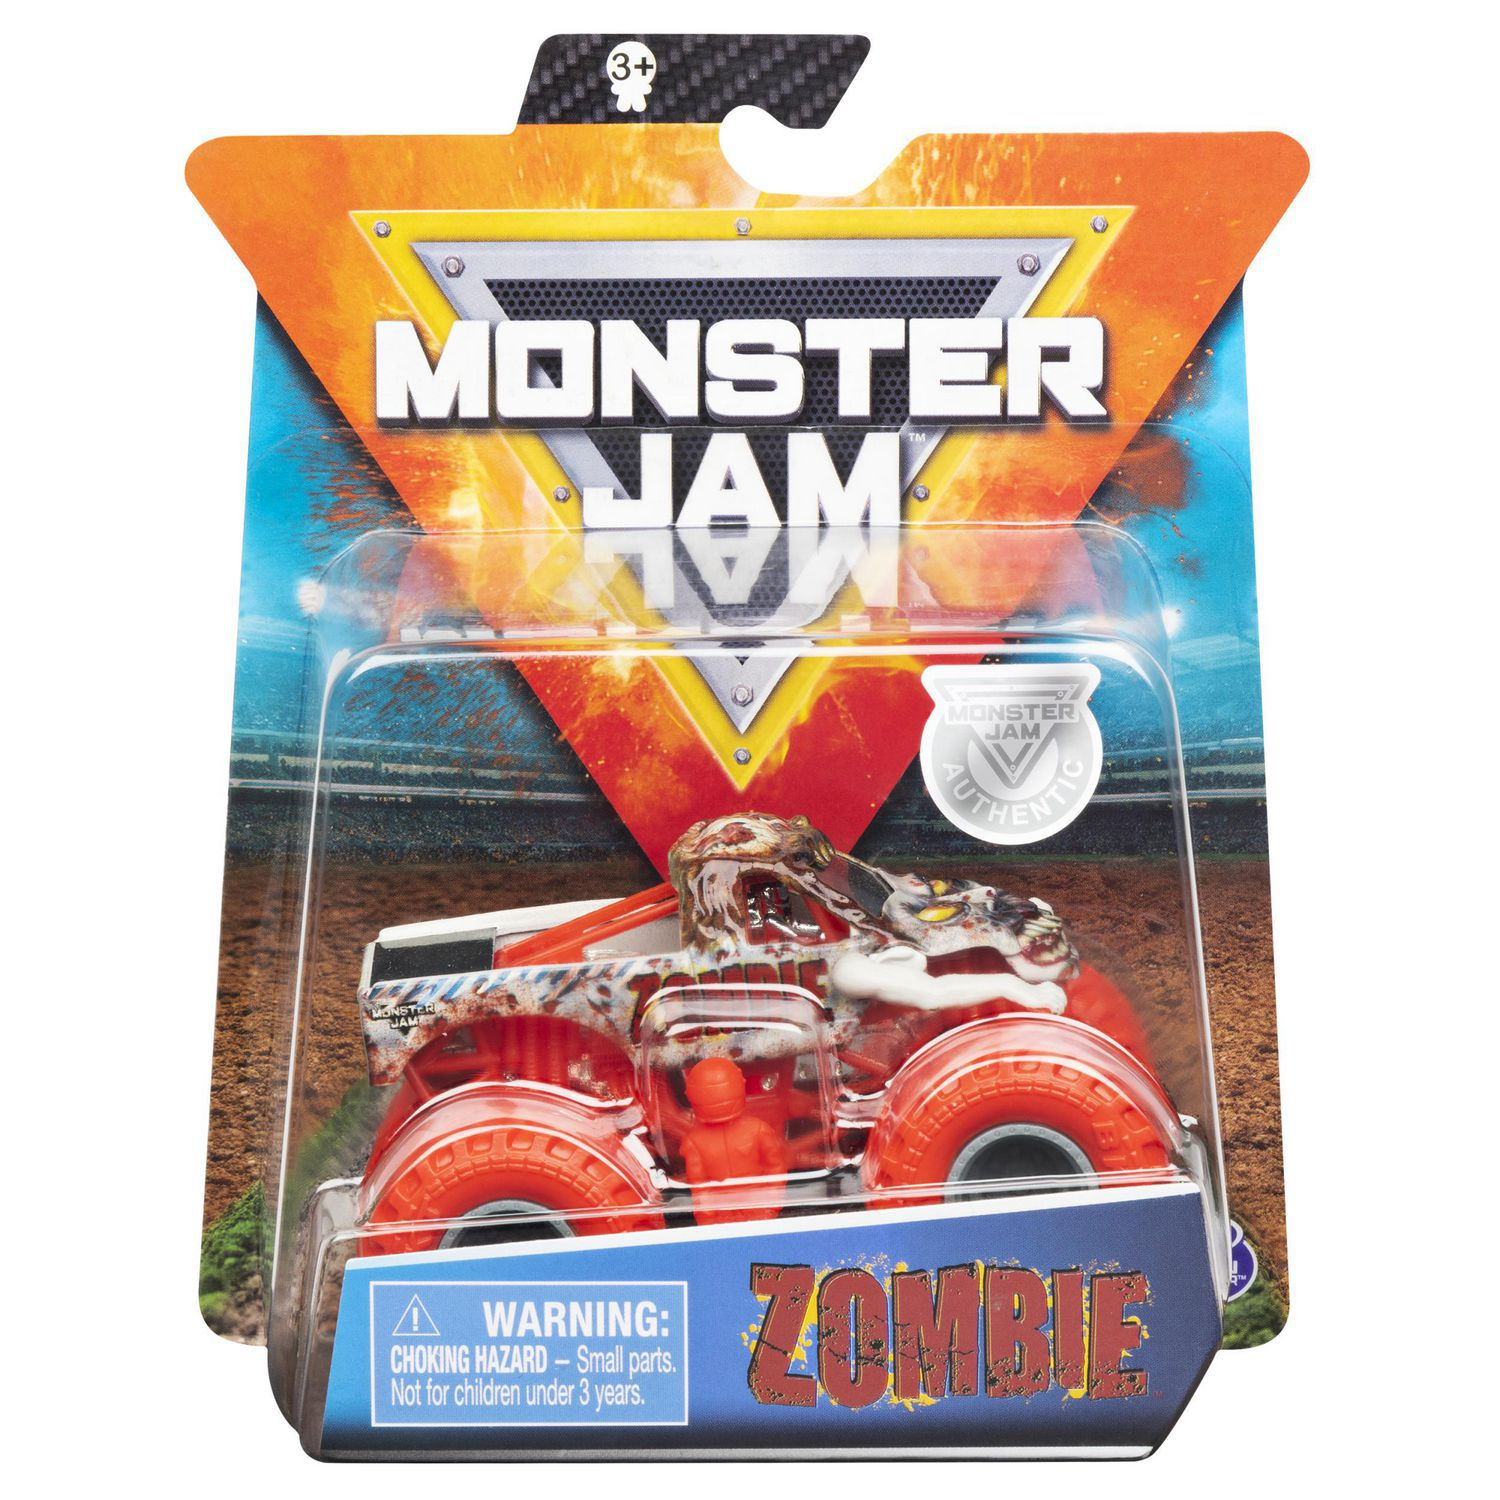 Carro Monster Jam Truck - Zombie - Escala 1:64 - Original